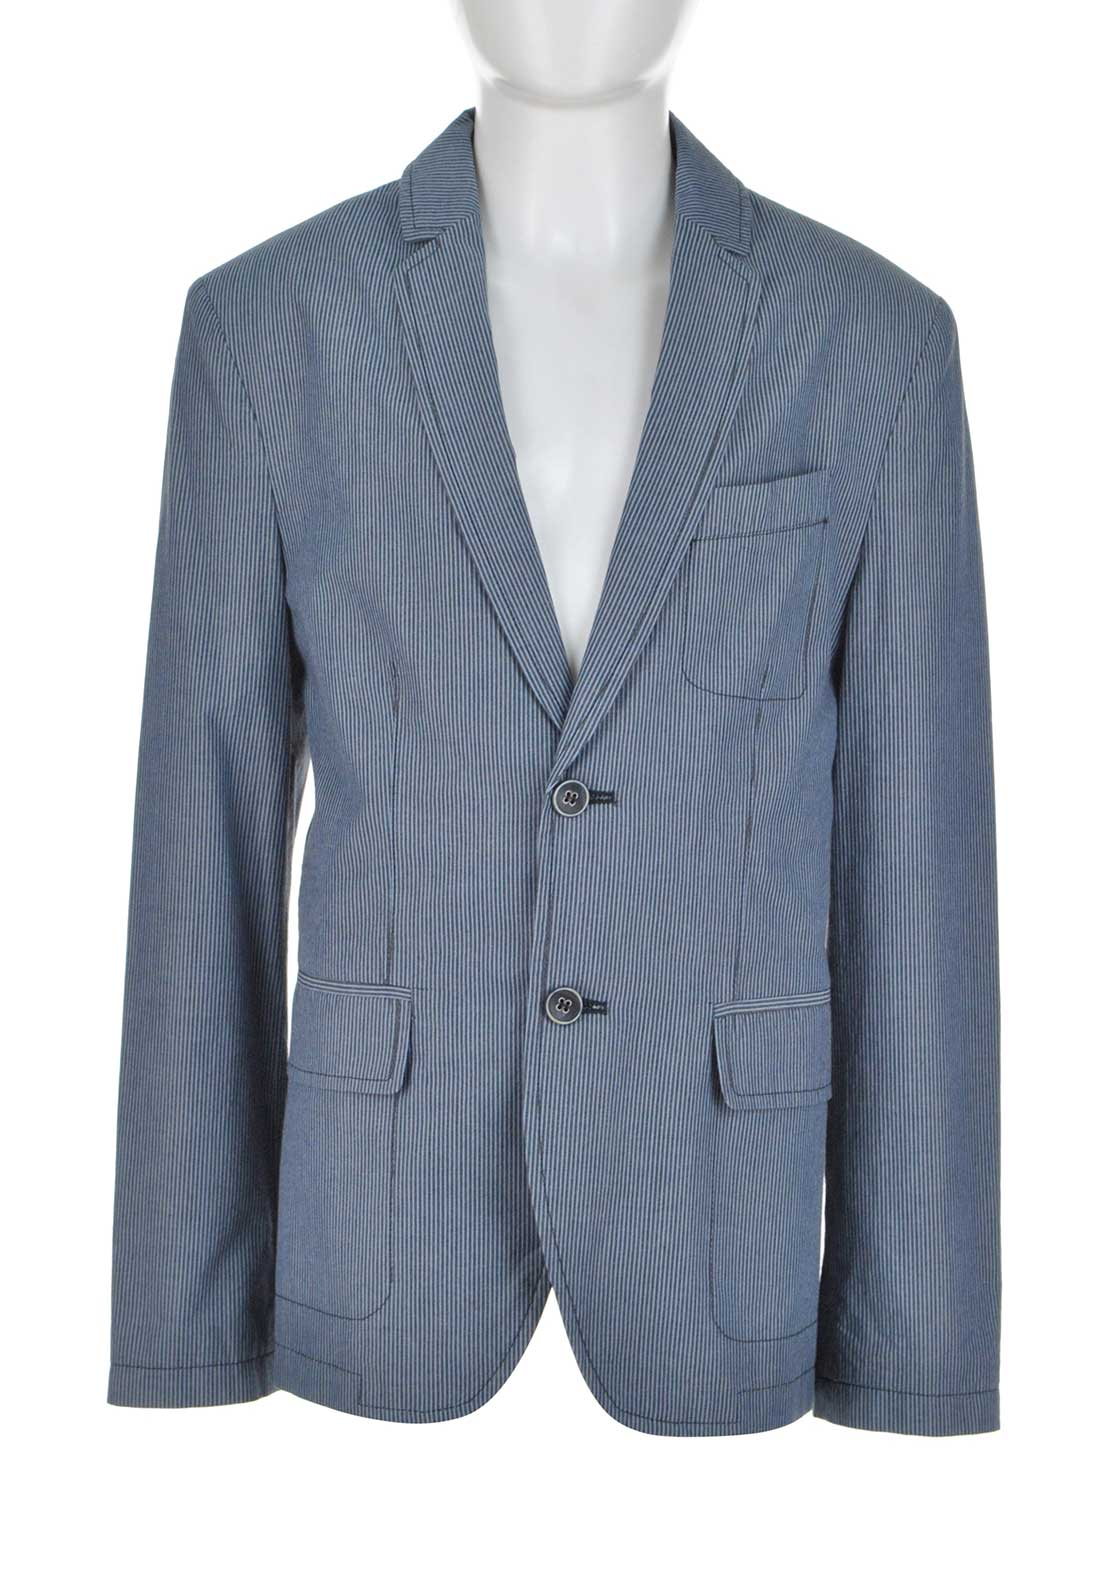 Weise Boys Striped Blazer Jacket, Grey and Blue